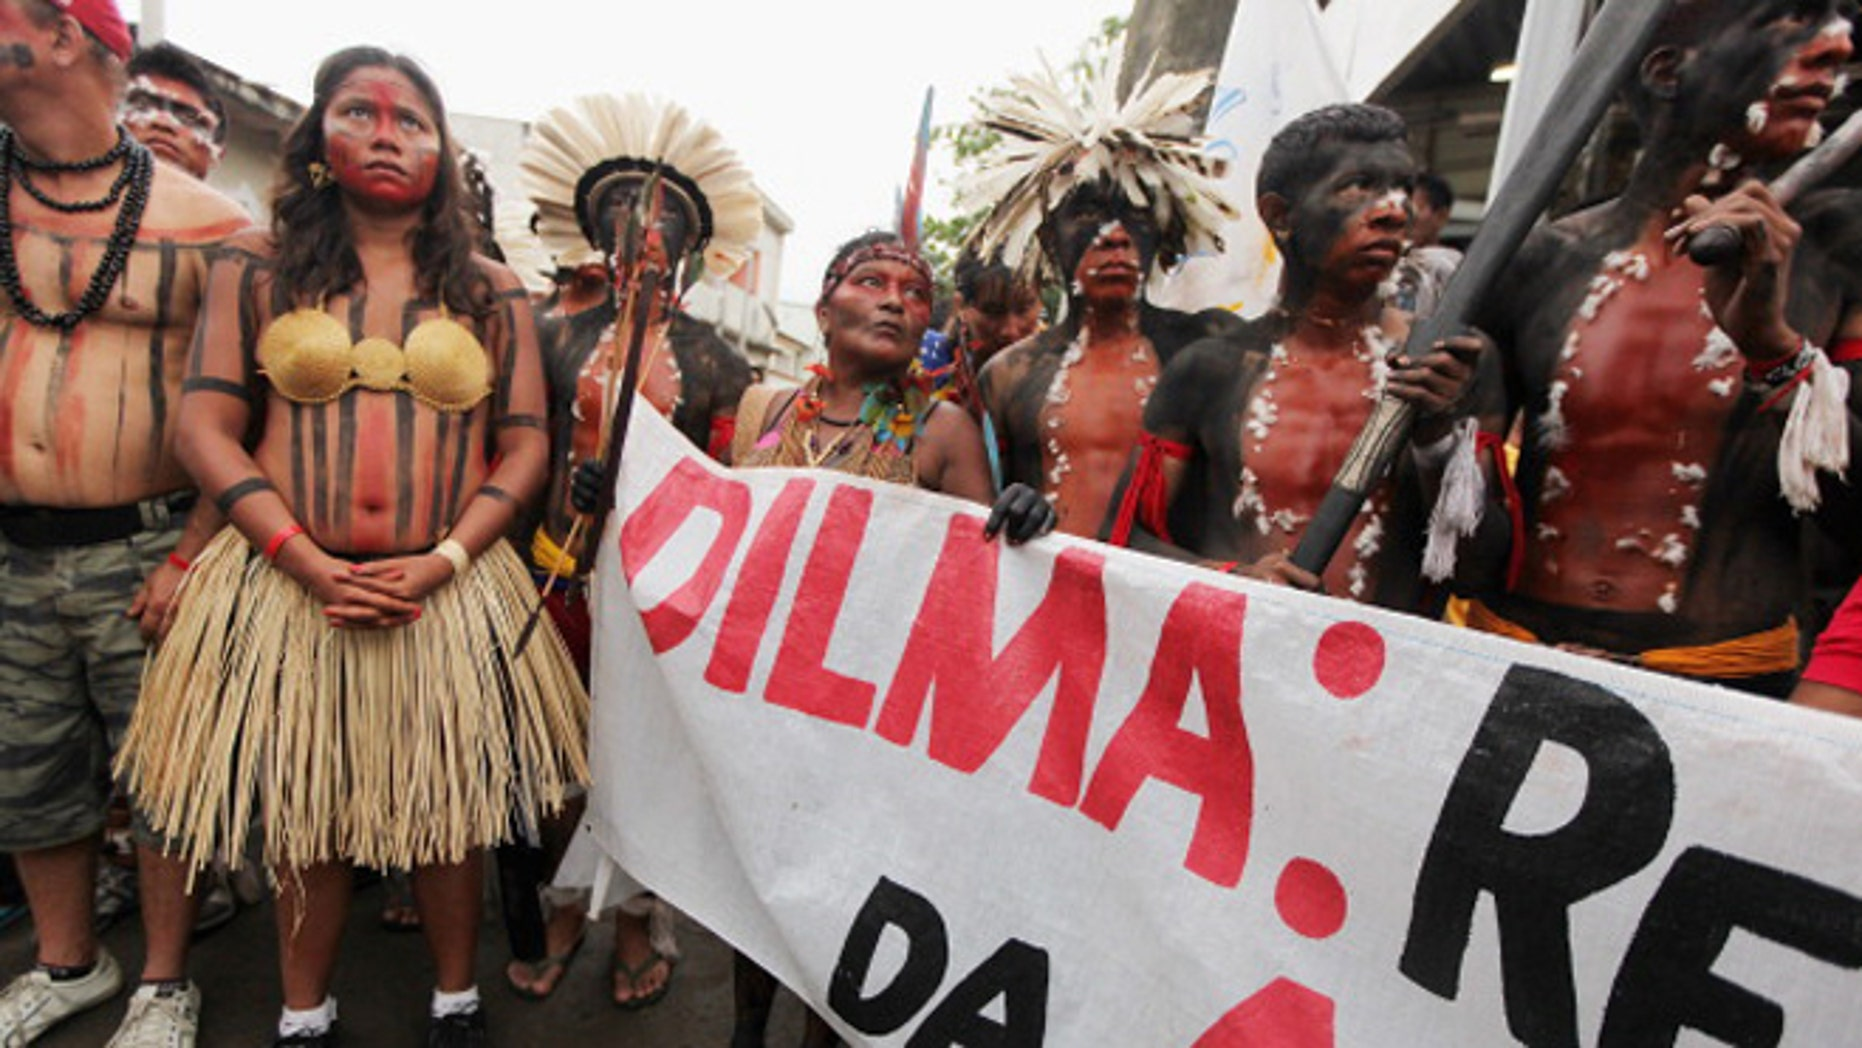 Indigenous and protesters look on during a march through the decades-old Vila Autodromo squatter settlement before demonstrating outside an entrance to the Rio + 20 conference on June 20, 2012 in Rio de Janeiro, (Photo by Mario Tama/Getty Images)